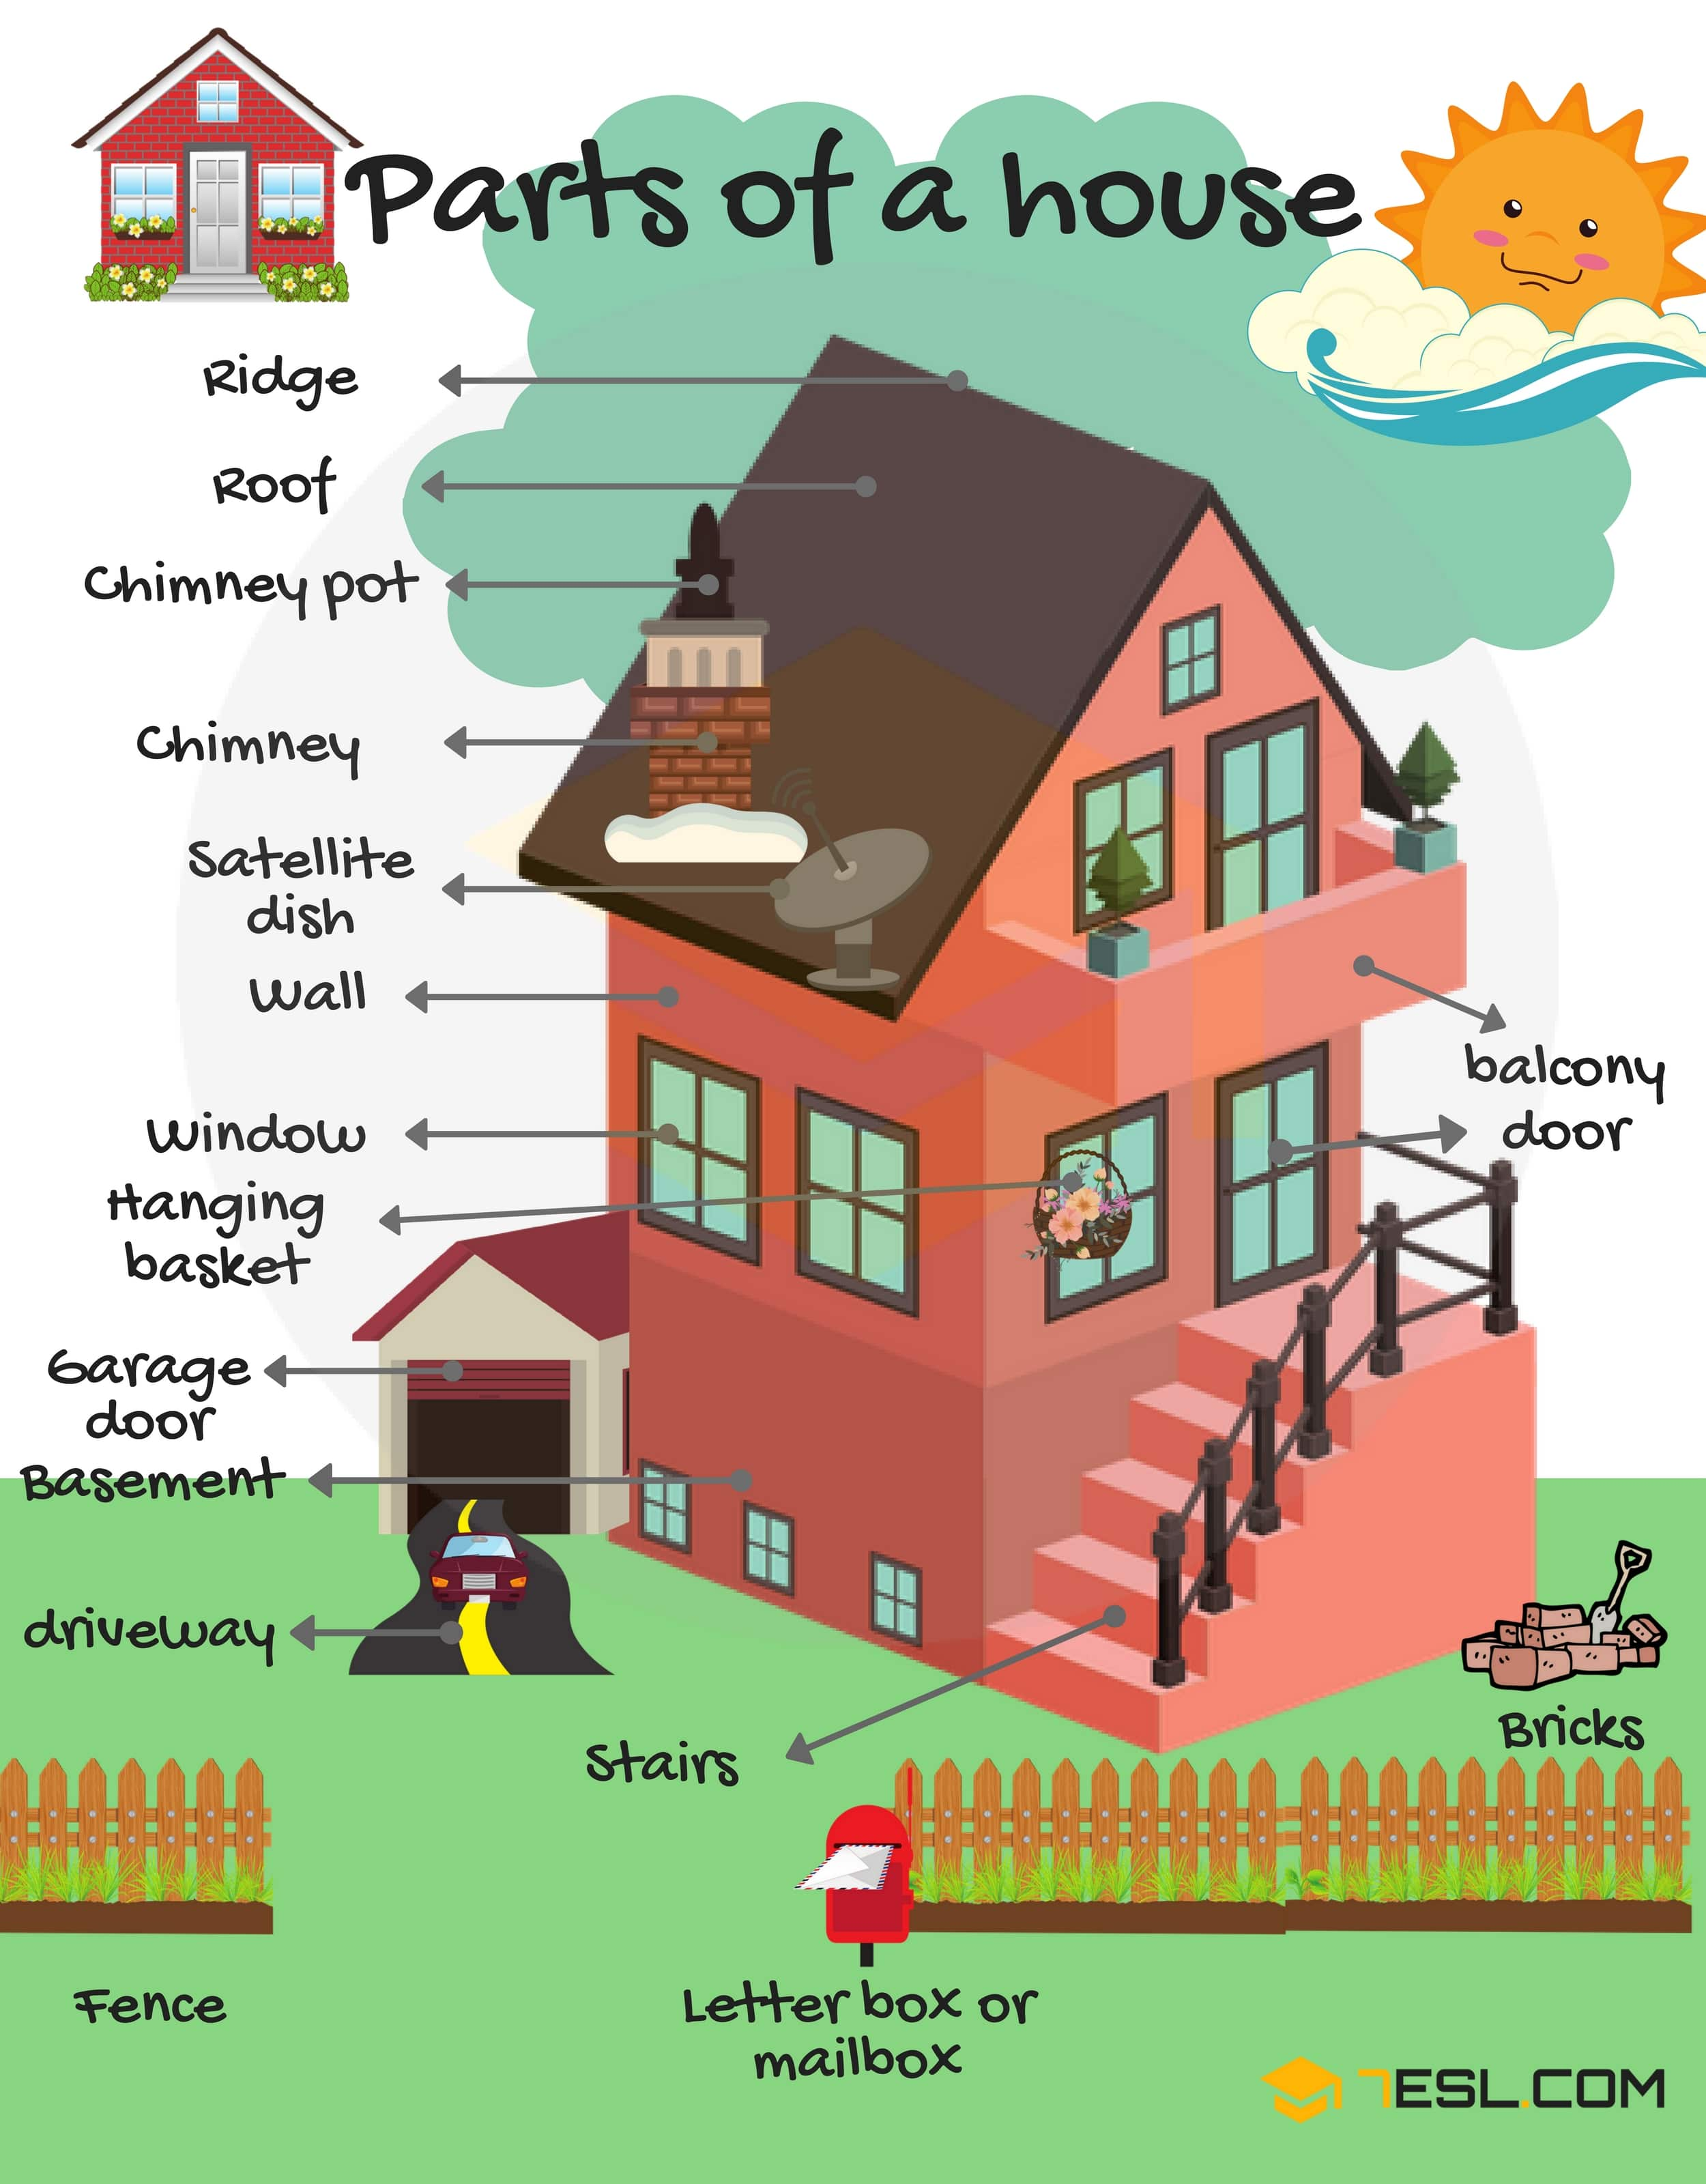 Learn Different Parts of a House in English